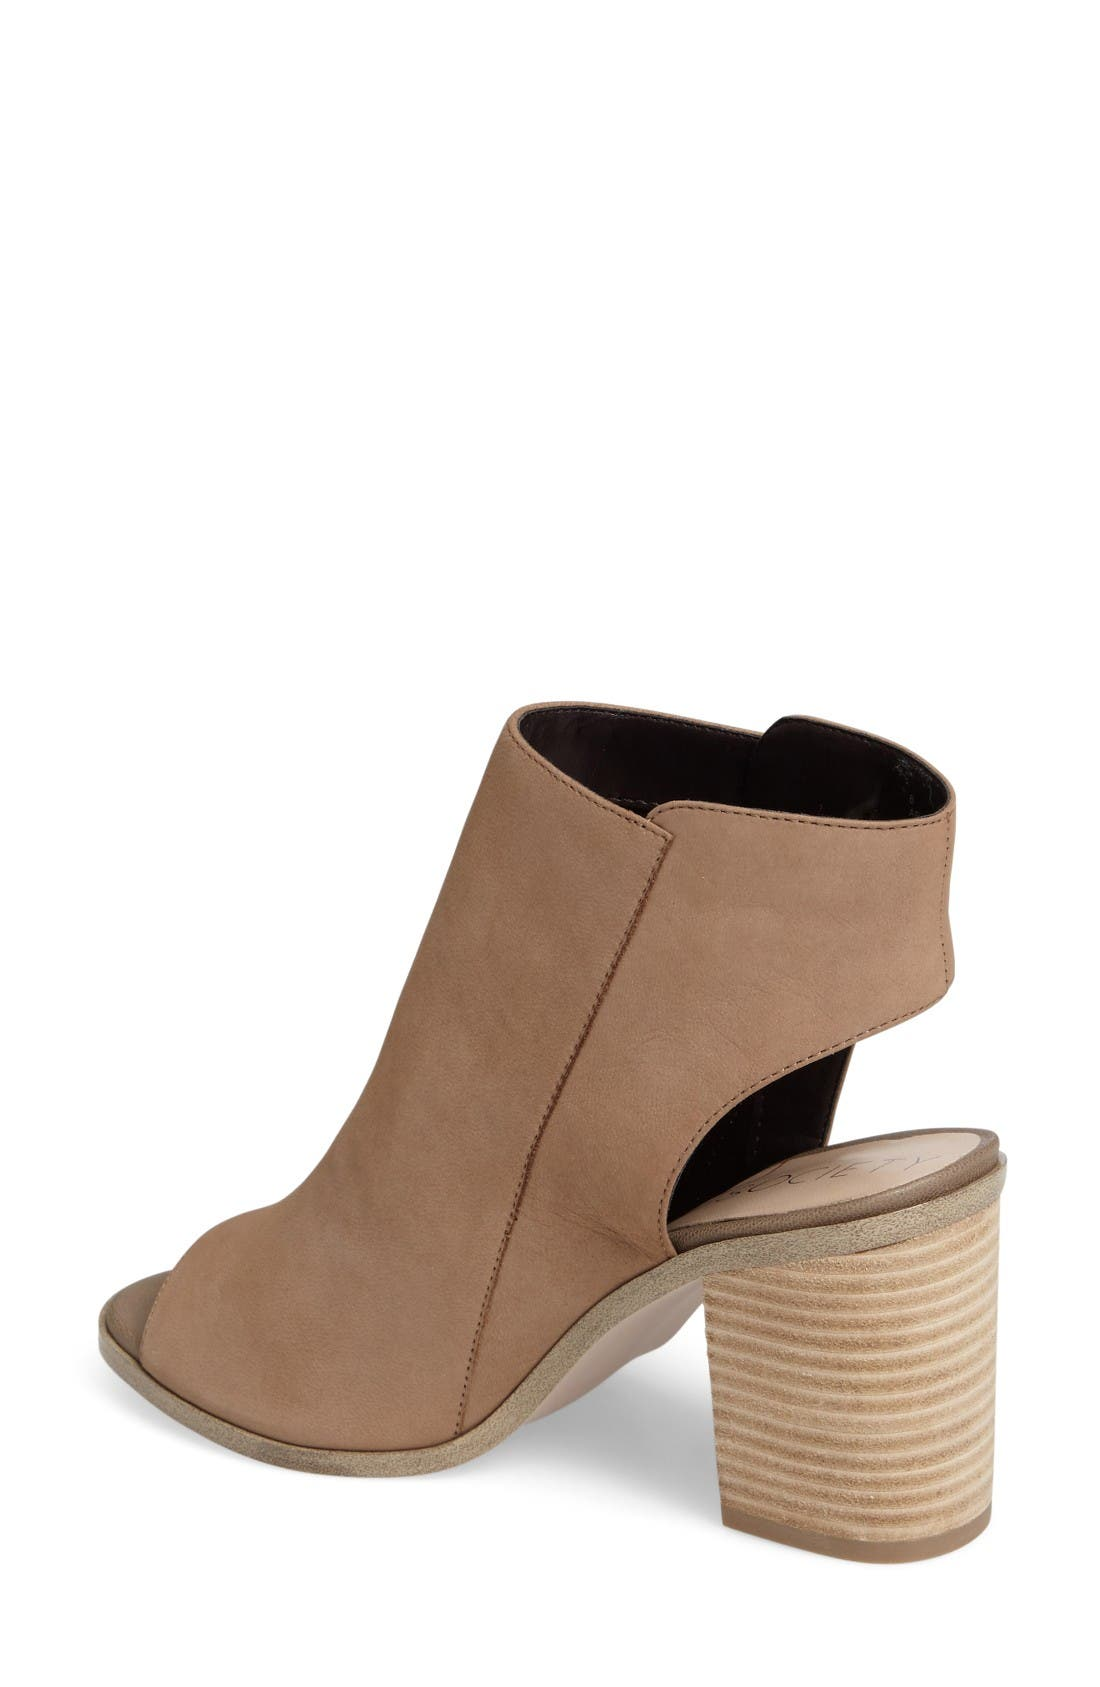 Alternate Image 2  - Sole Society Arizona Block Heel Peep-Toe Bootie (Women)